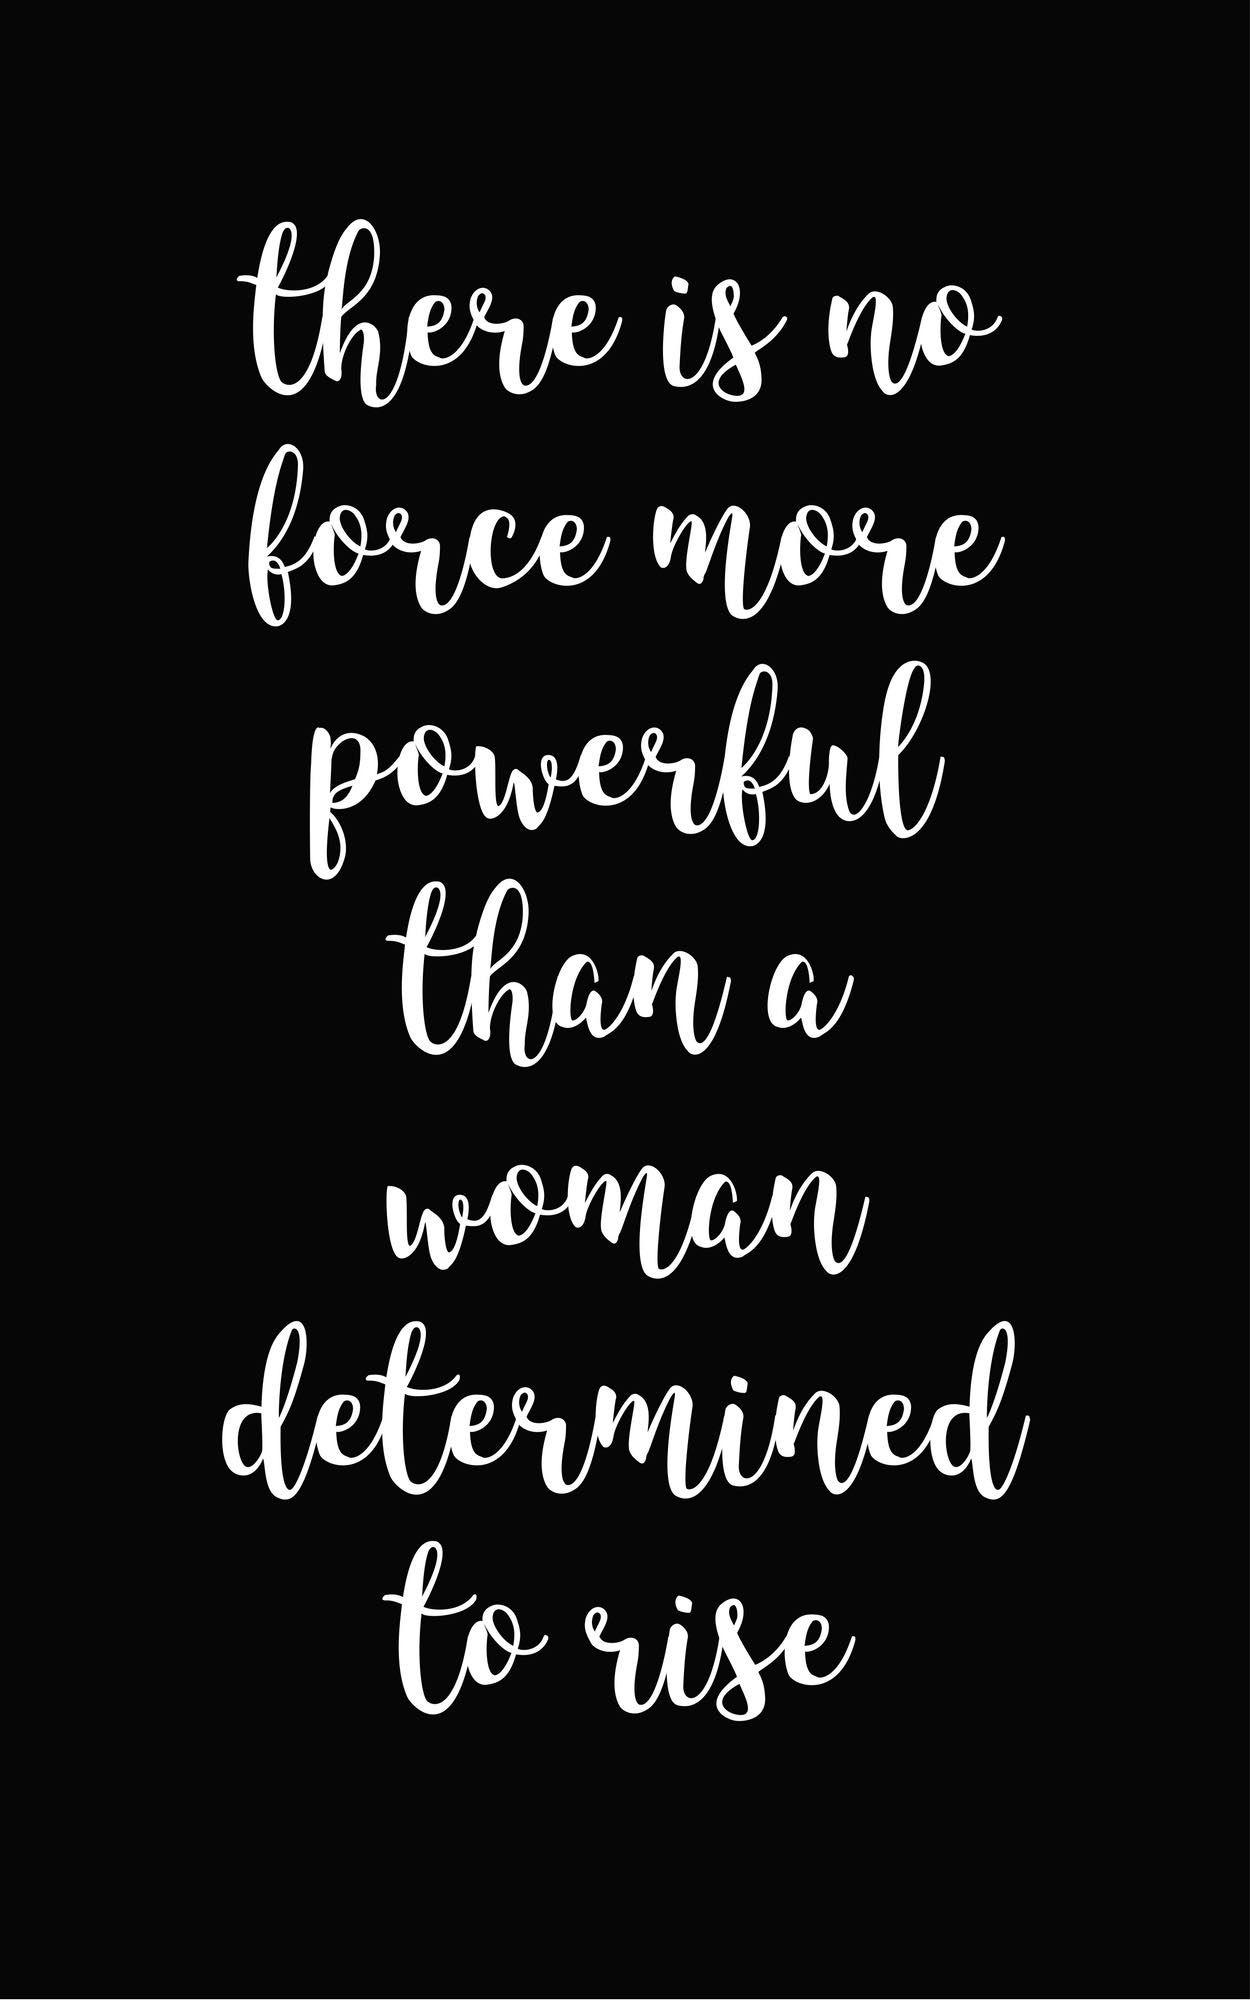 Boss Quotes 25 Quotes for Lady Entrepreneurs and Badass Women | Inspirational  Boss Quotes